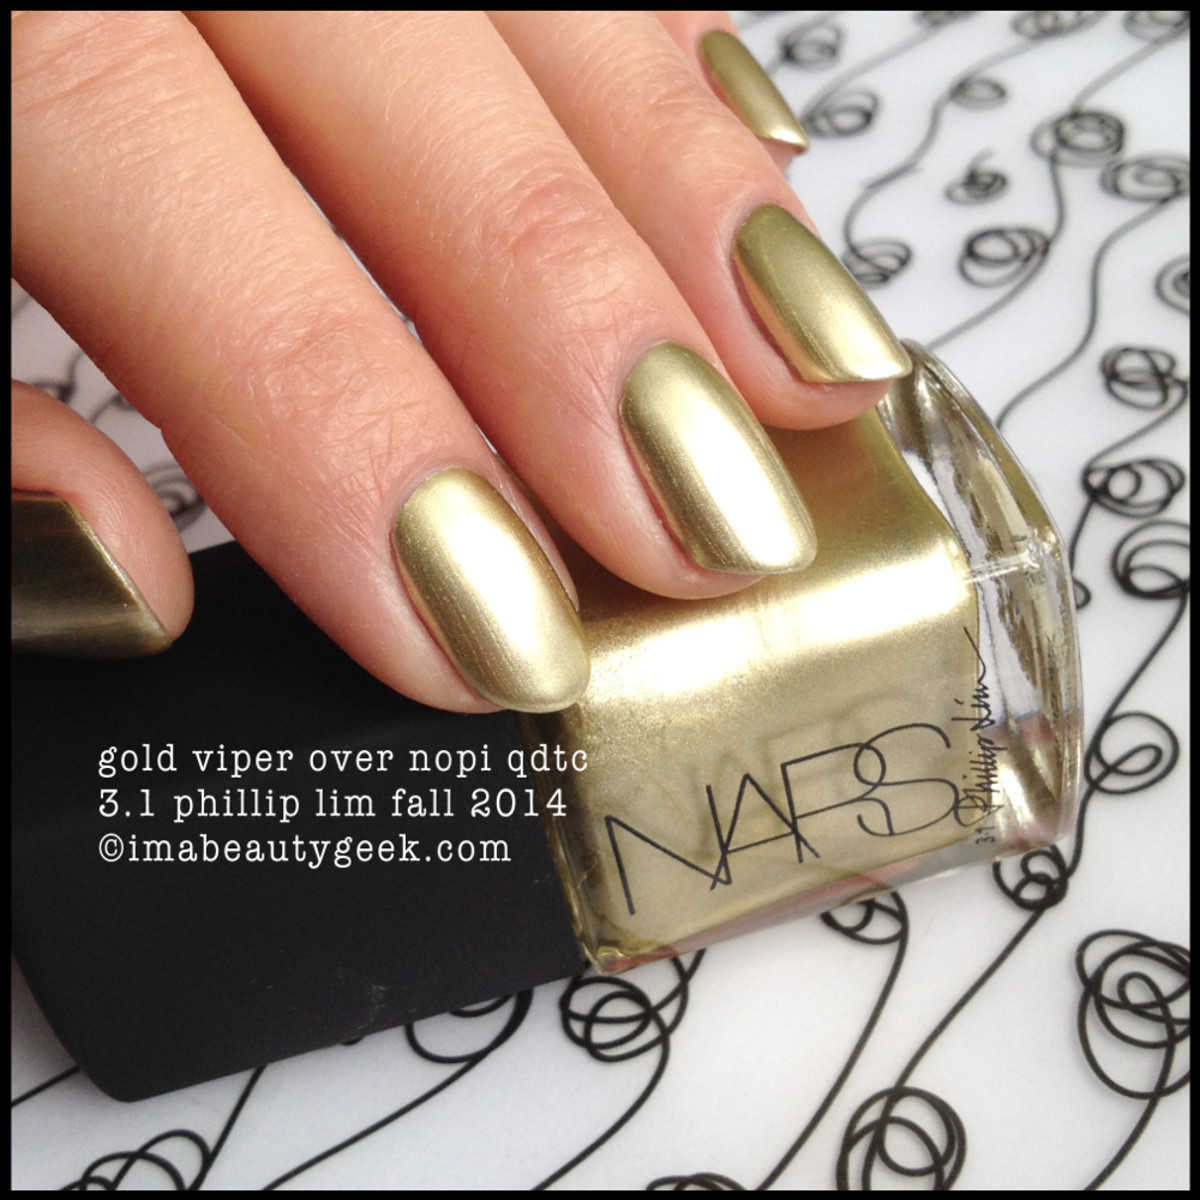 NARS polish Gold Viper 3.1 Phillip Lim Fall 2014